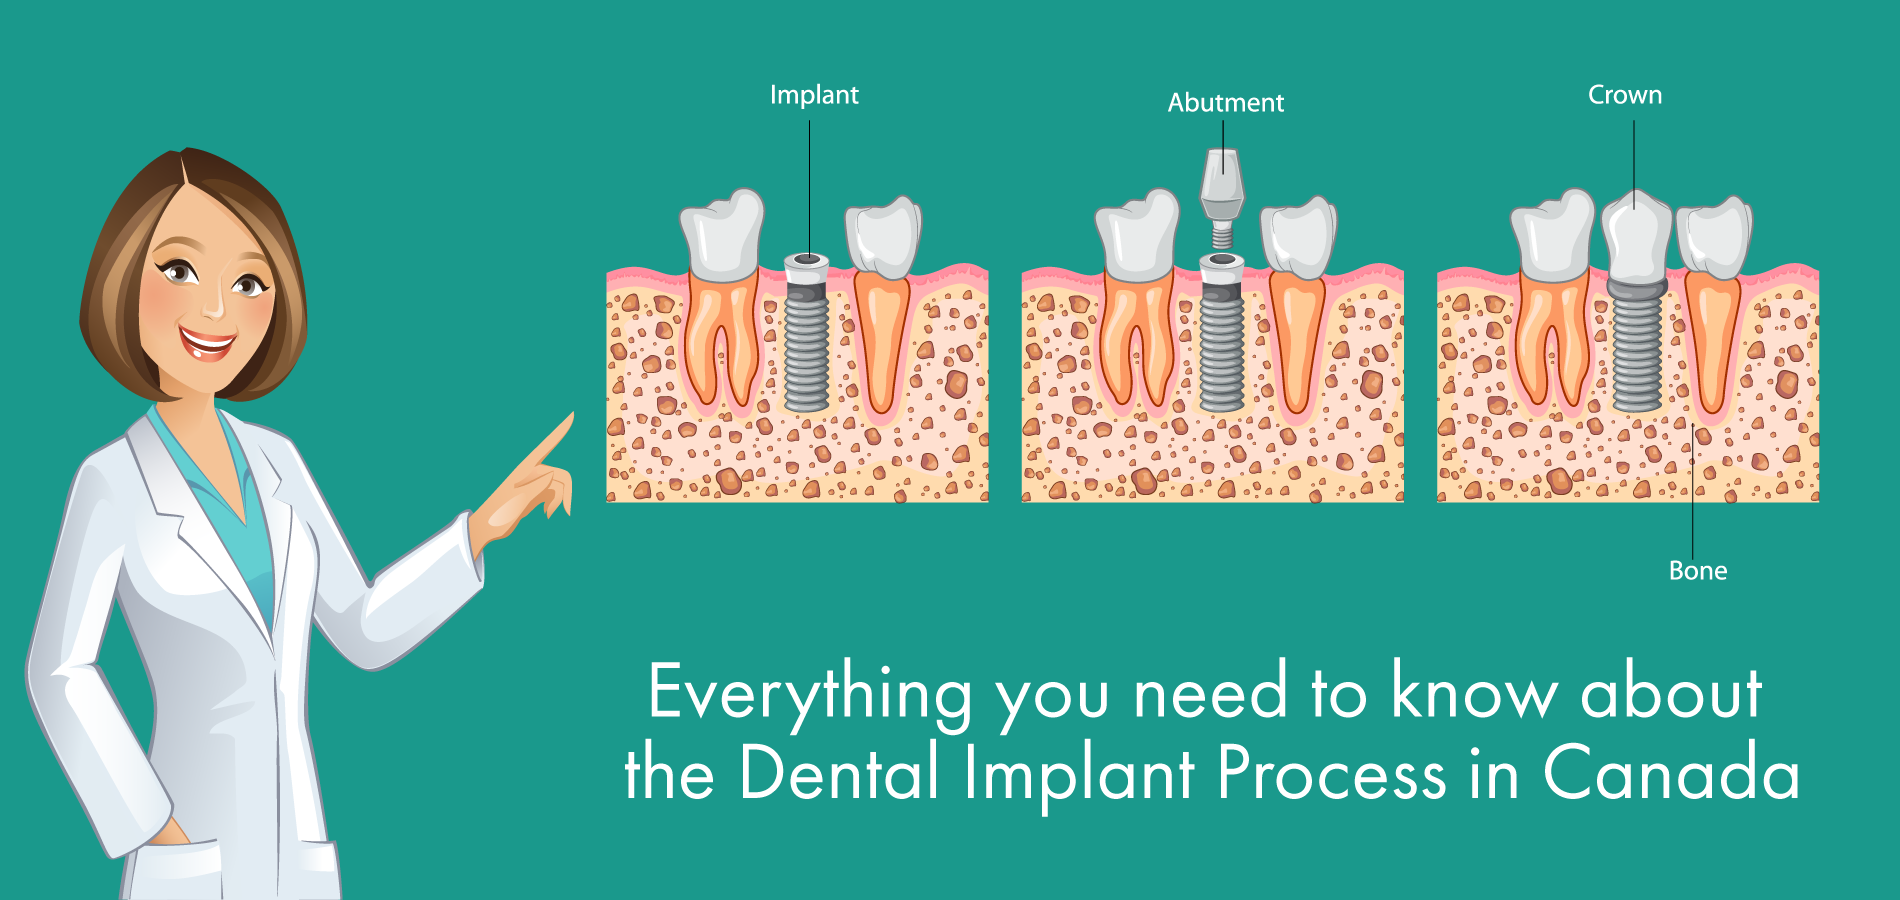 Everything You Need to Know about the Dental Implant Process in Canada